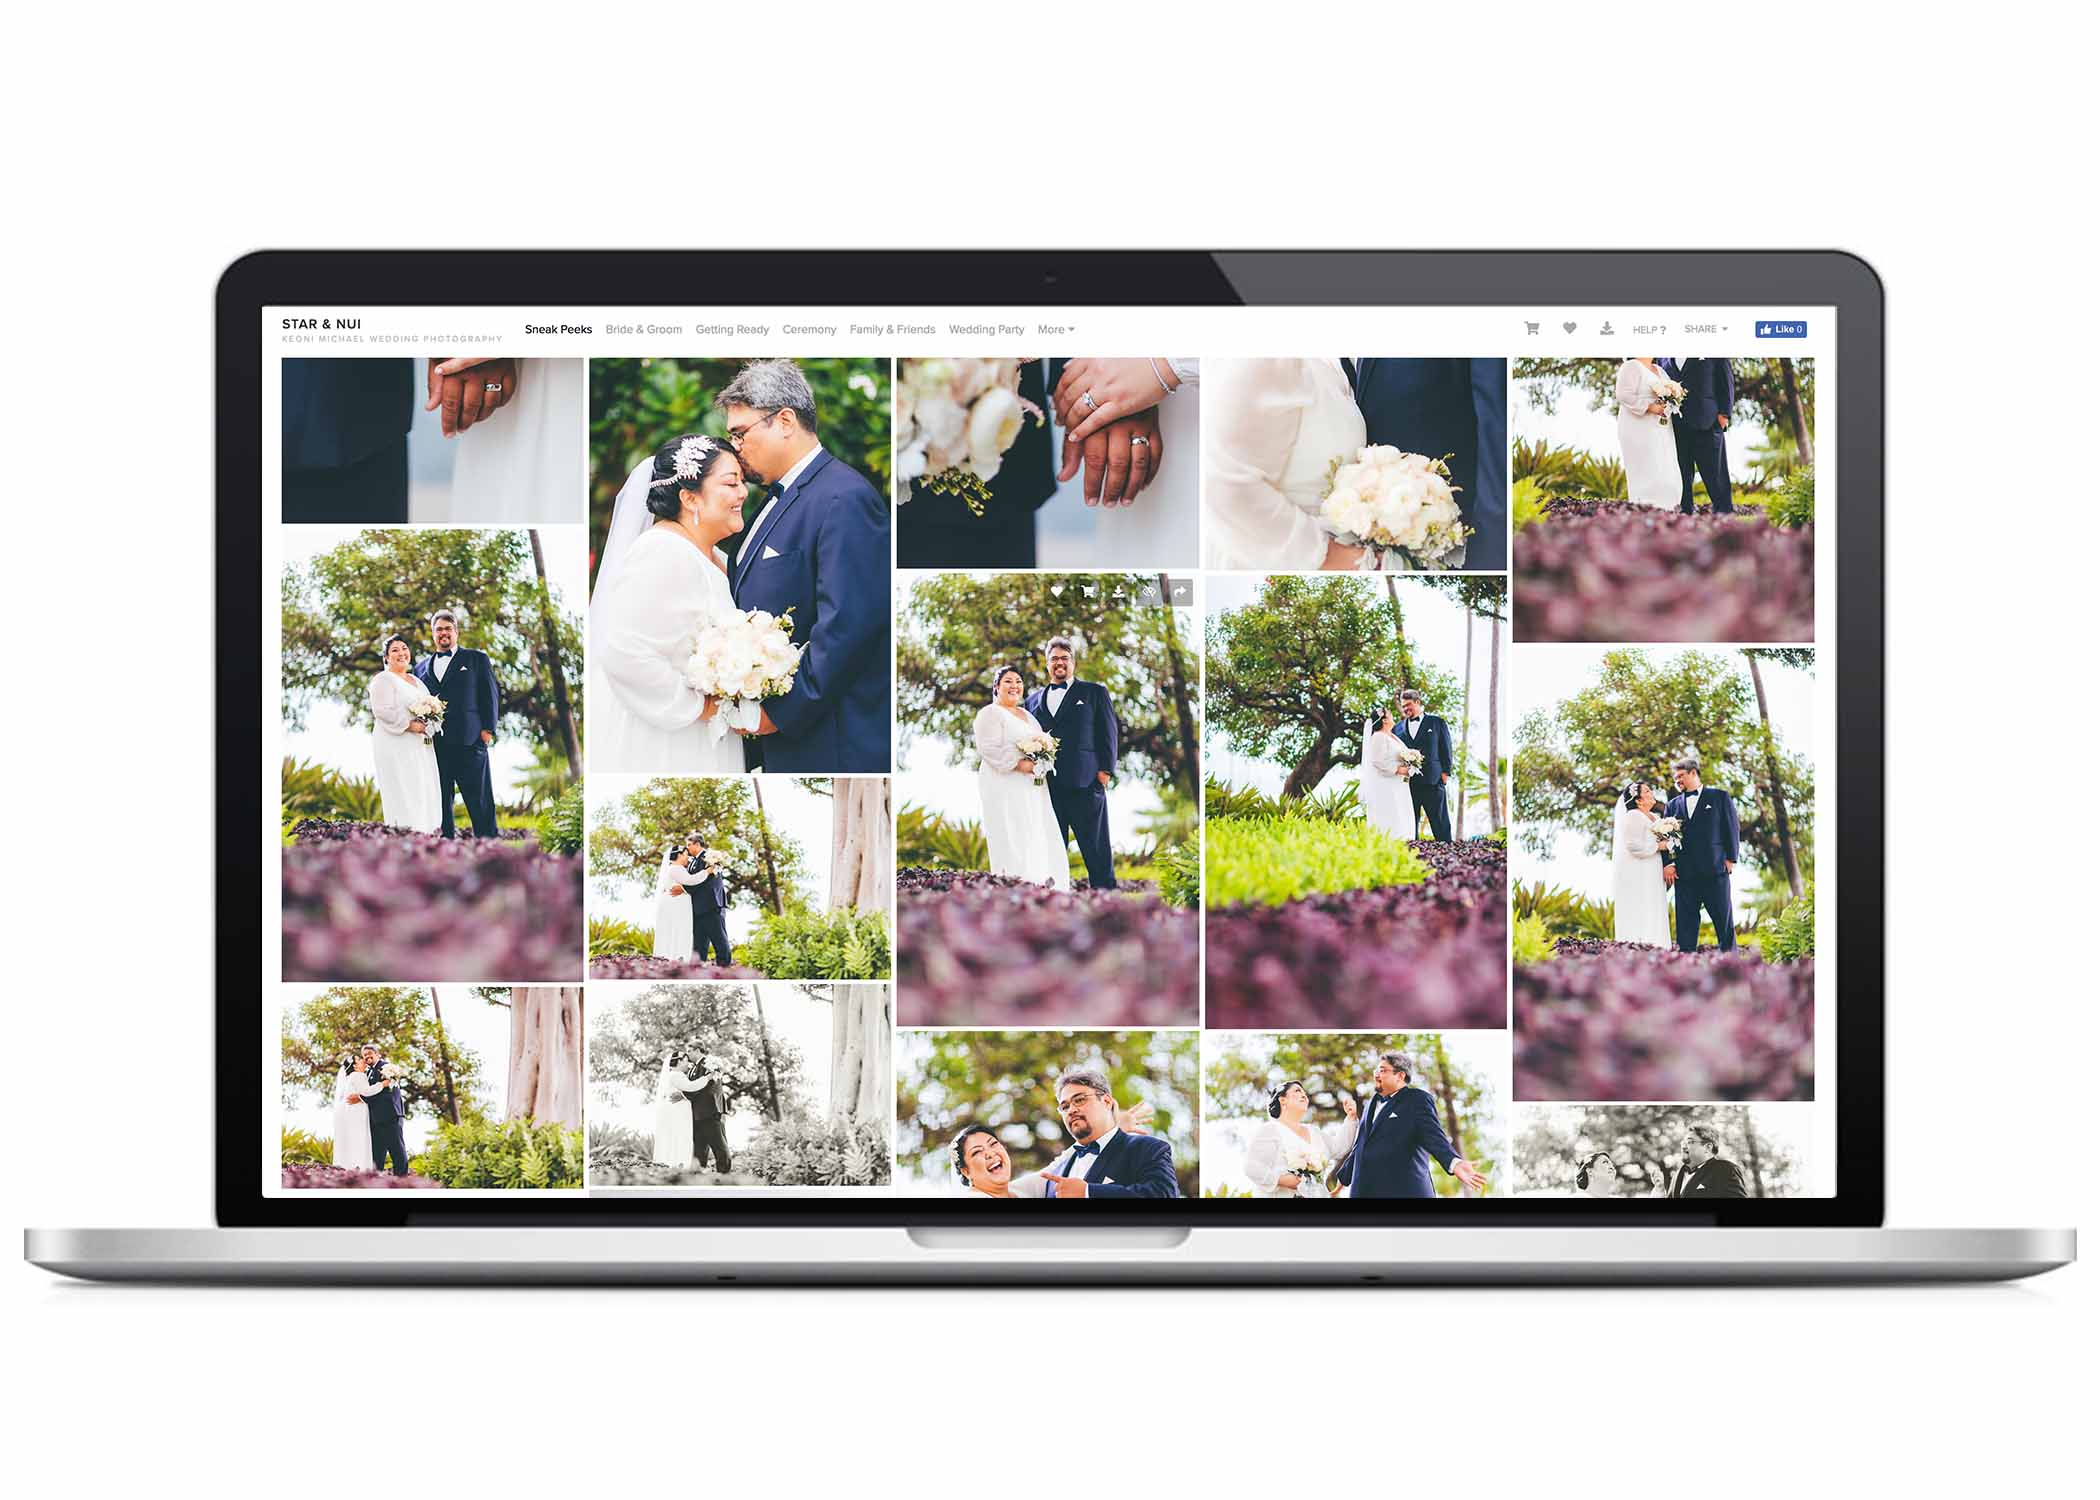 - ONLINE IMAGE DELIVERYSimple. Fast. Convenient.All of your high-resolution wedding images are delivered in a beautiful online gallery where you will be able to directly download and share them with family & friends.